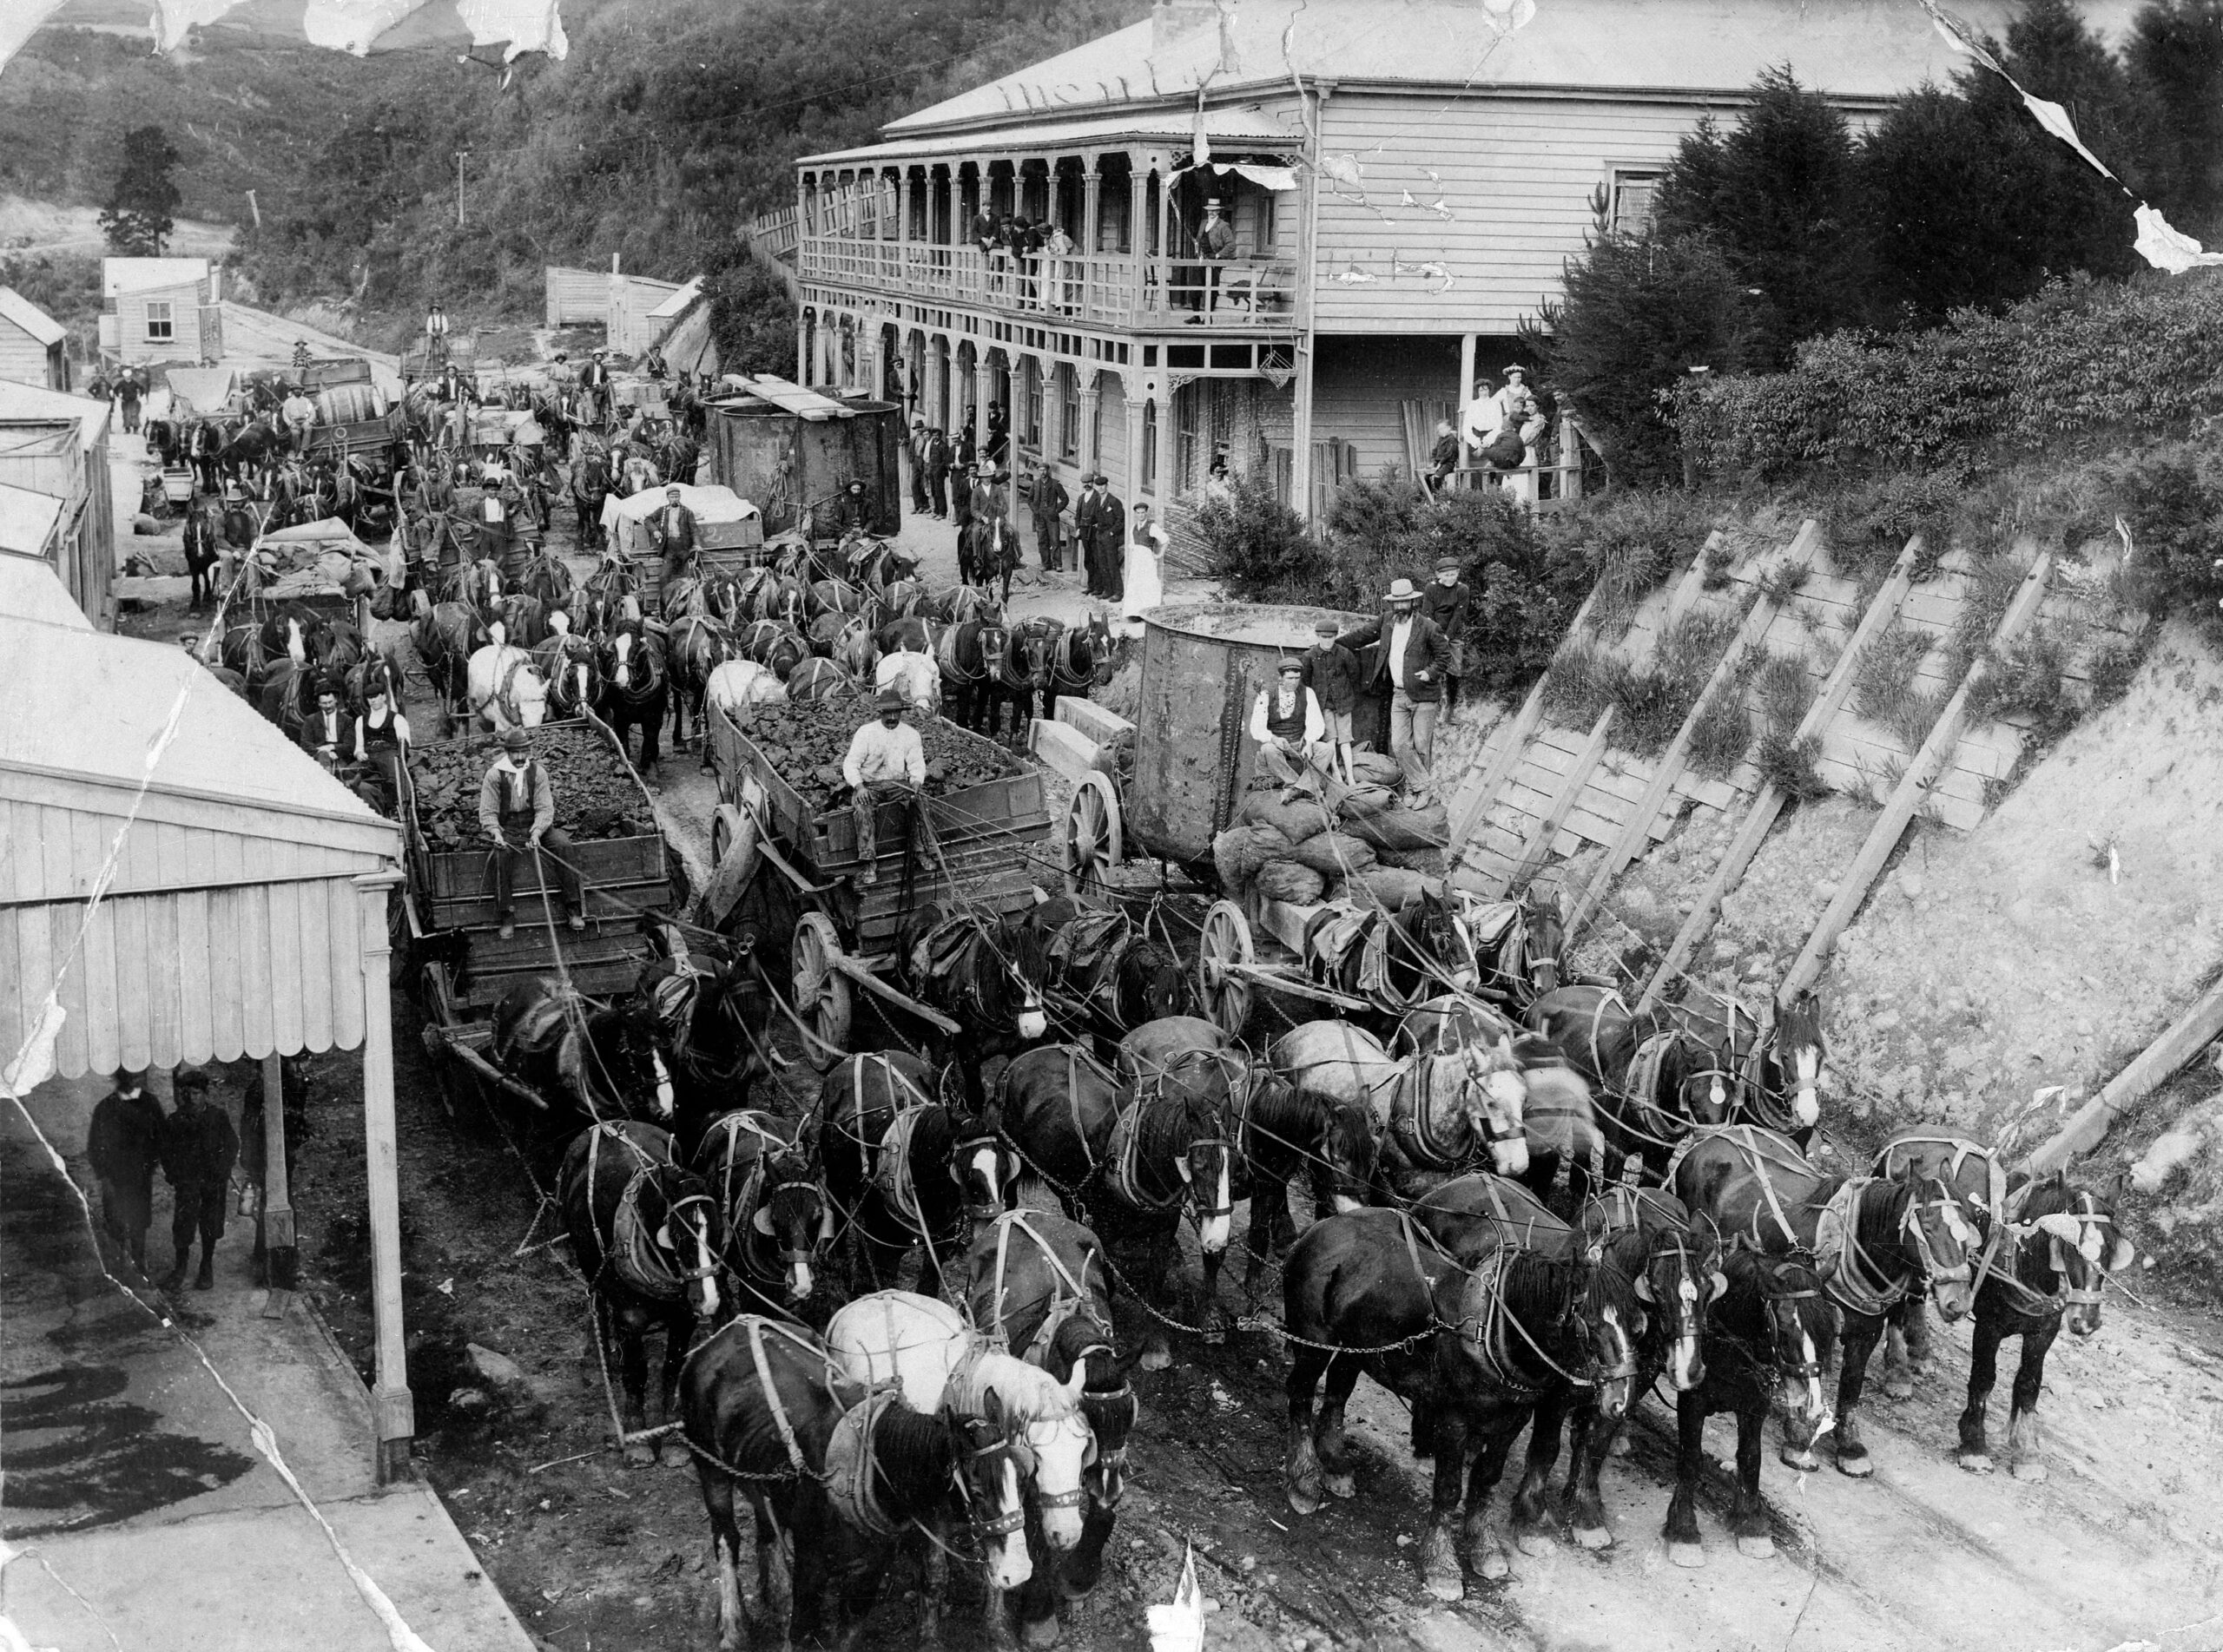 Image of Working Horses of New Zealand, from the Bullswool Farm Heritage Museums